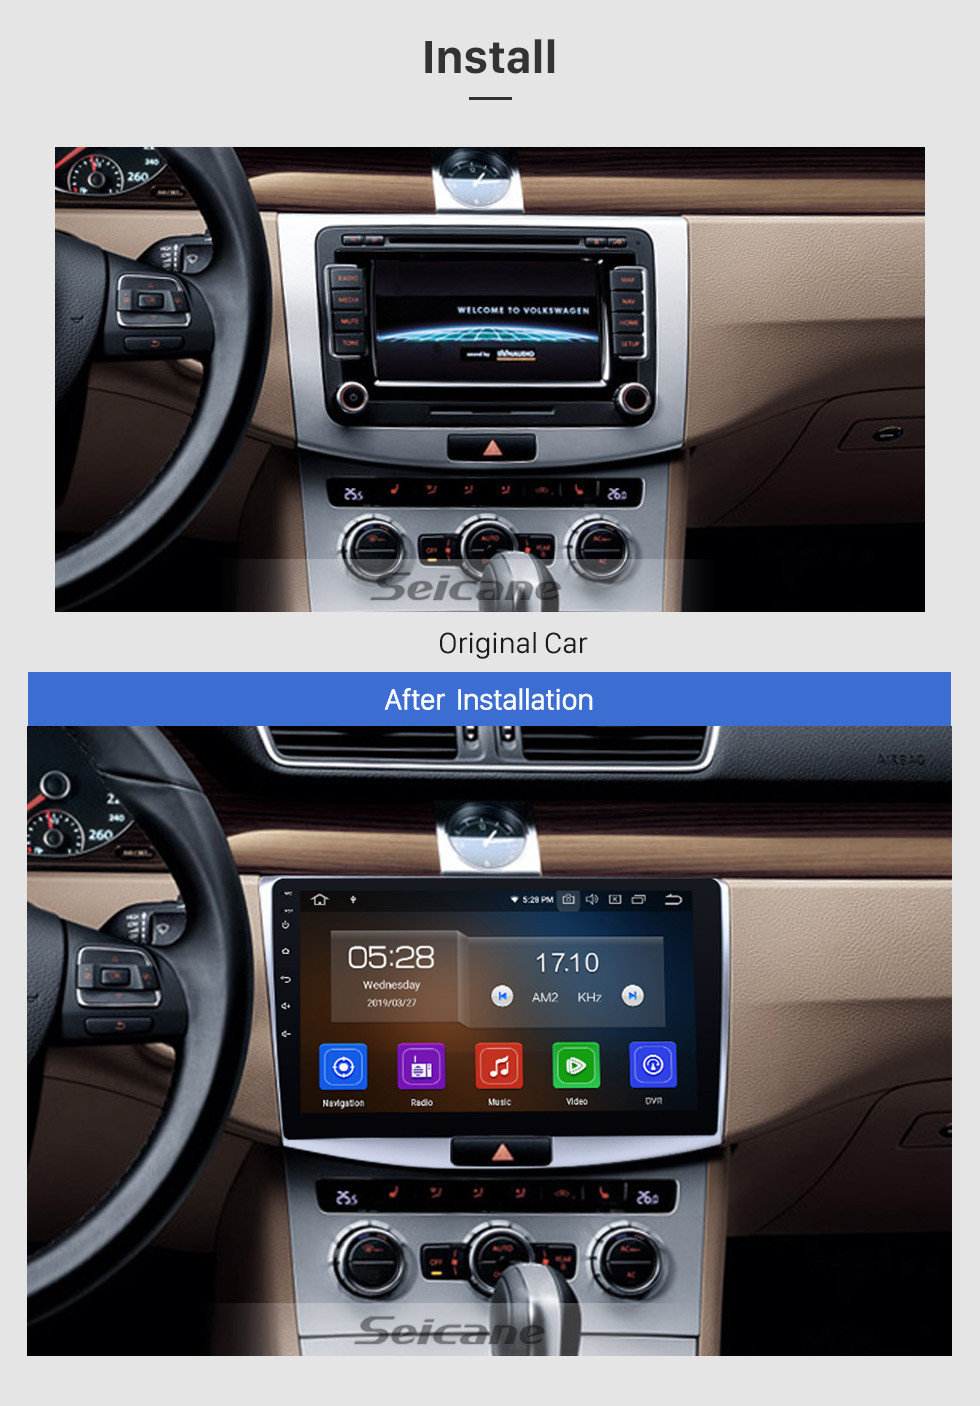 Seicane 10.1 inch 1024*600 touchscreen 2012 2013 2014 VW Volkswagen Magotan Radio Removal with Android 9.0 in Dash GPS Bluetooth Car Audio System 3G WiFi CD DVD Player OBD2 Mirror Link Steering Wheel Control